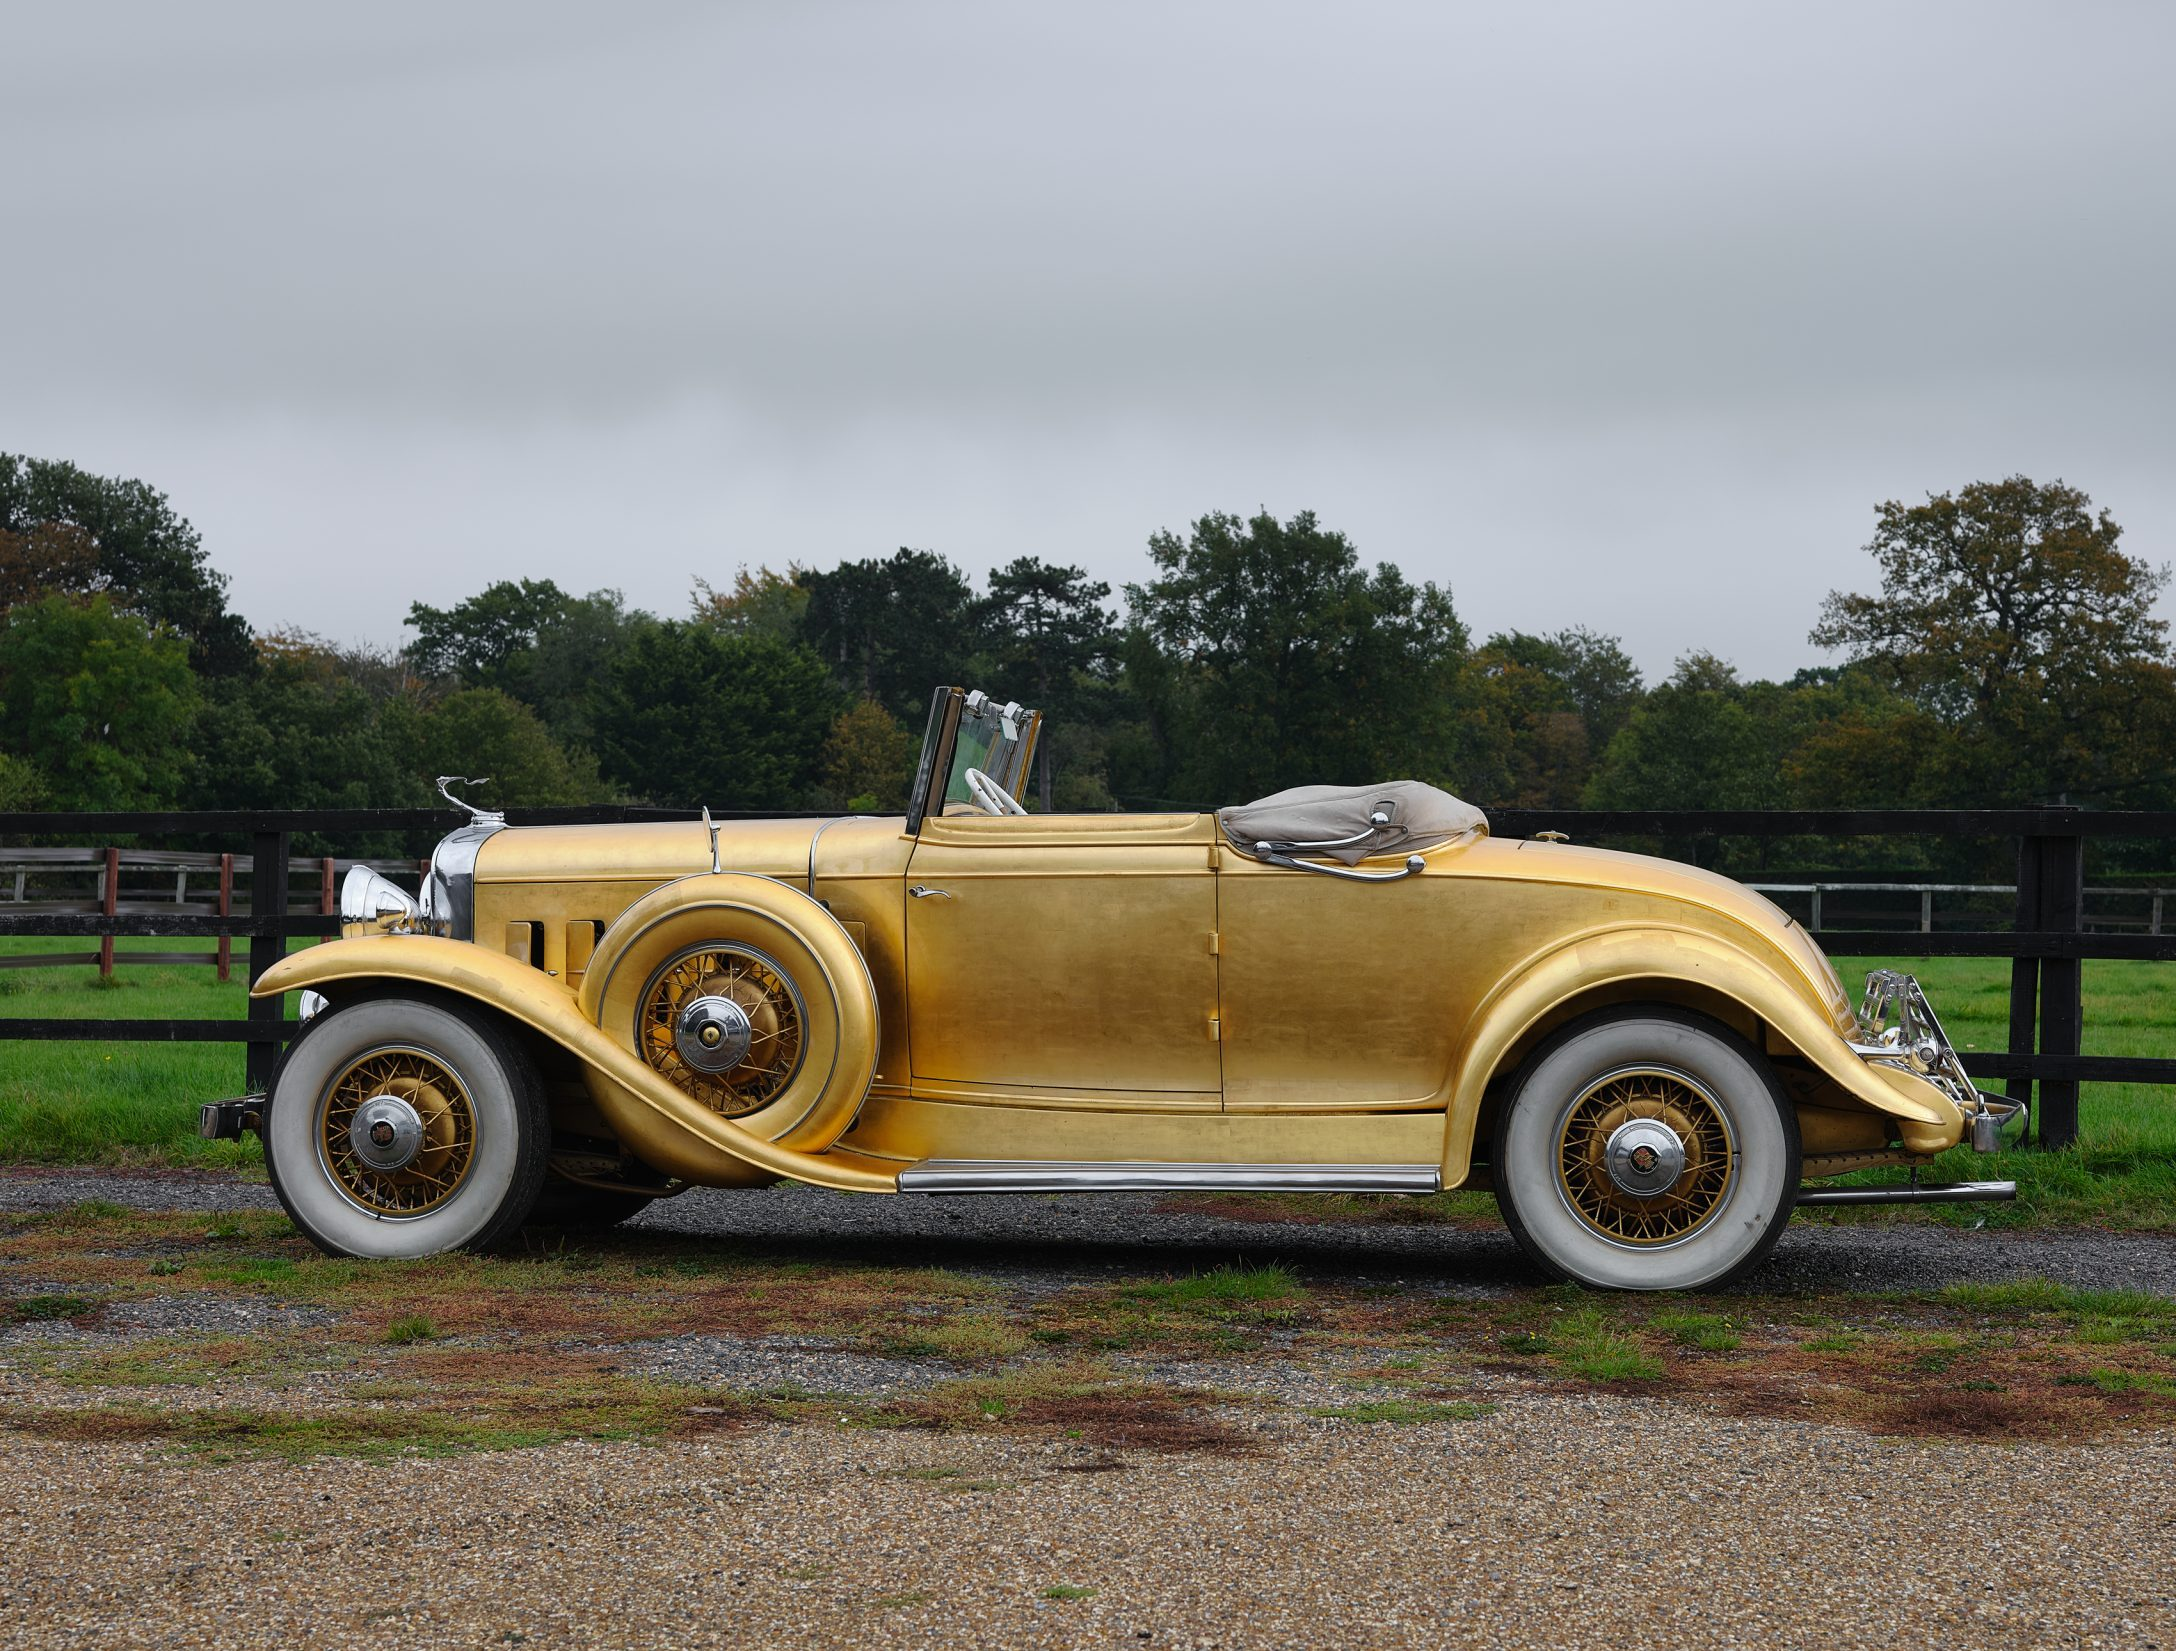 1931 Cadillac V-8 Convertible Coupe side profile